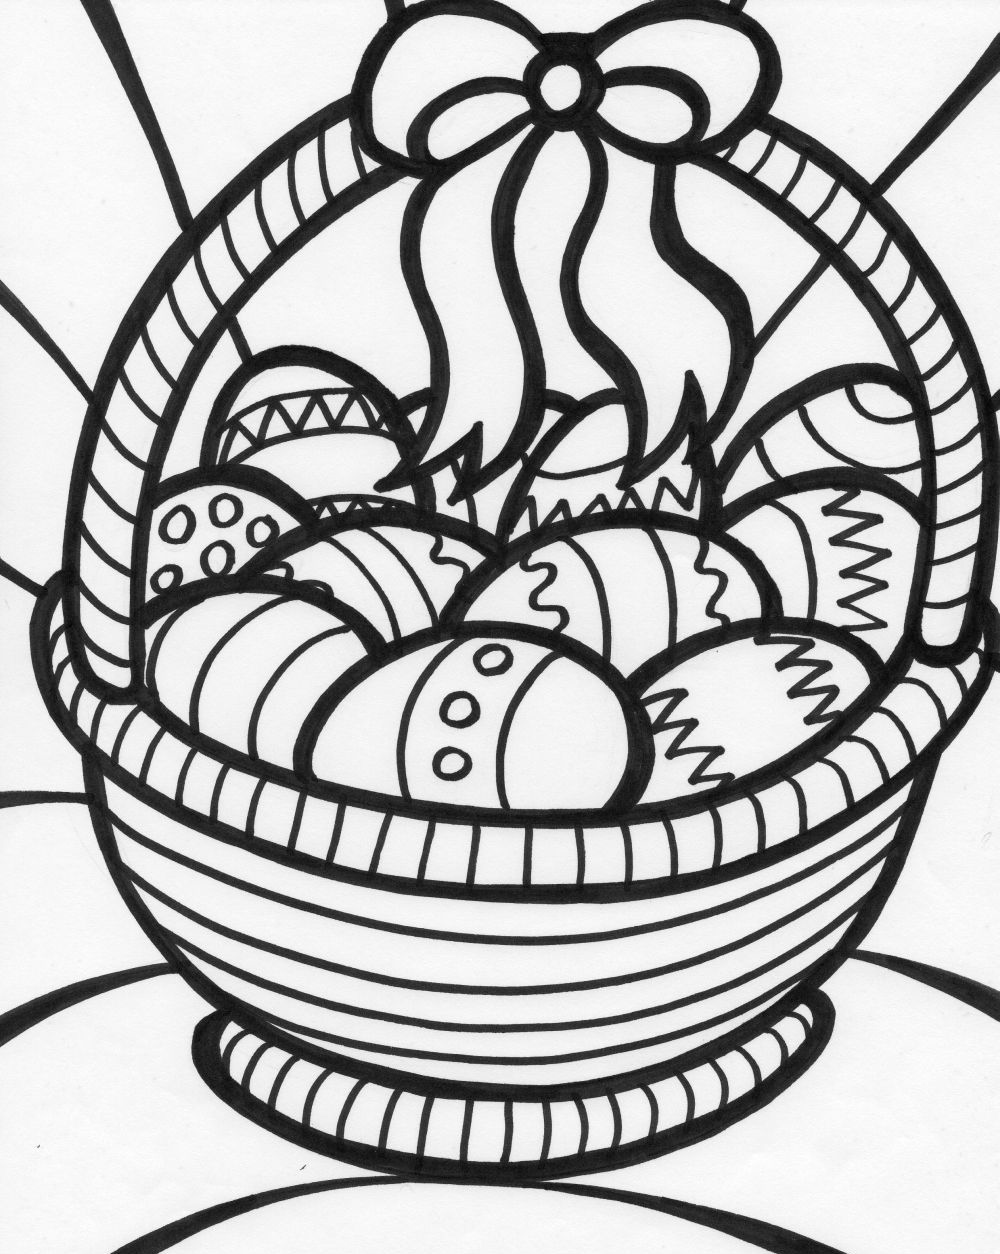 easter basket coloring pages top 10 free printable easter basket coloring pages online coloring easter basket pages